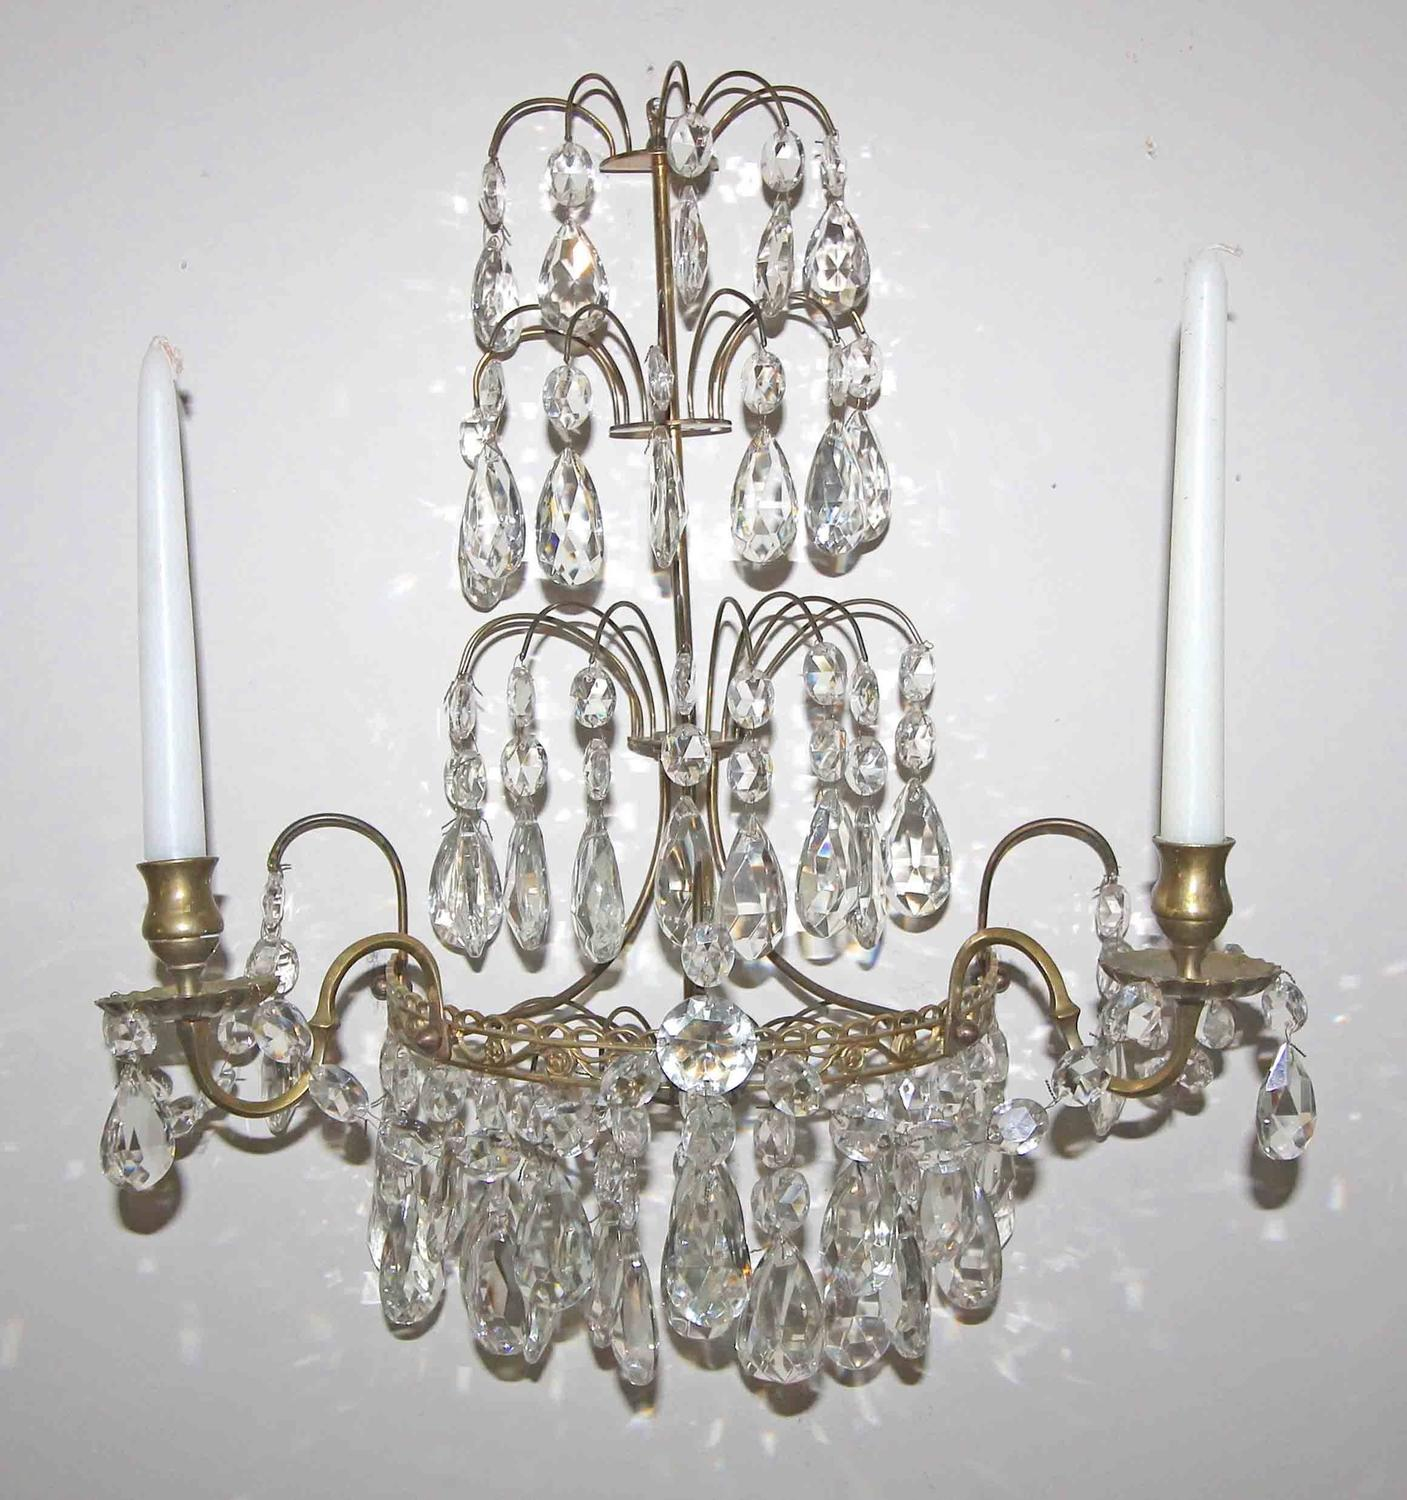 Wall Sconces For Candles With Crystals : Pair of Swedish Gustavian Style Crystal and Brass Candle Wall Sconces For Sale at 1stdibs